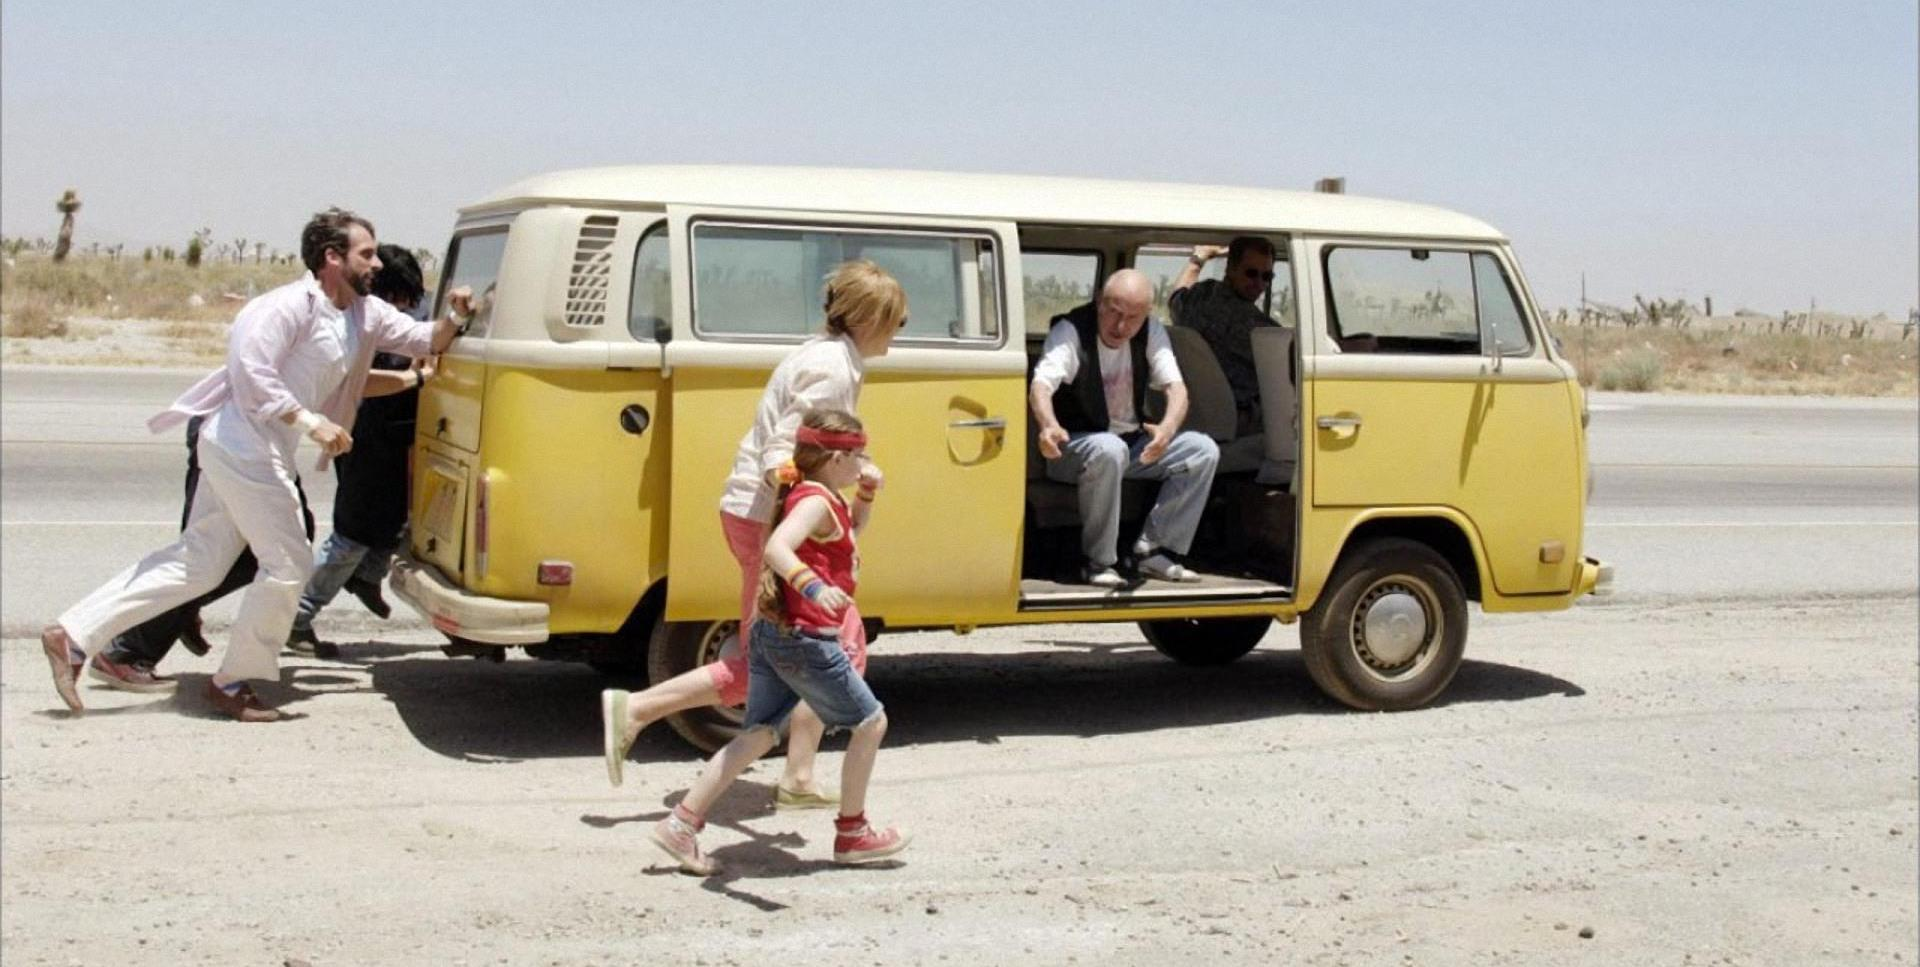 A yellow van with its doors open on a stretch of road. Two men are seen inside, while a woman and a young girl run beside it. The girl is wearing a bright red top and jean shorts, while the woman wears a white jacket and pink jeans. Two men run behind the van— one wearing white and one wearing black— helping to push it.